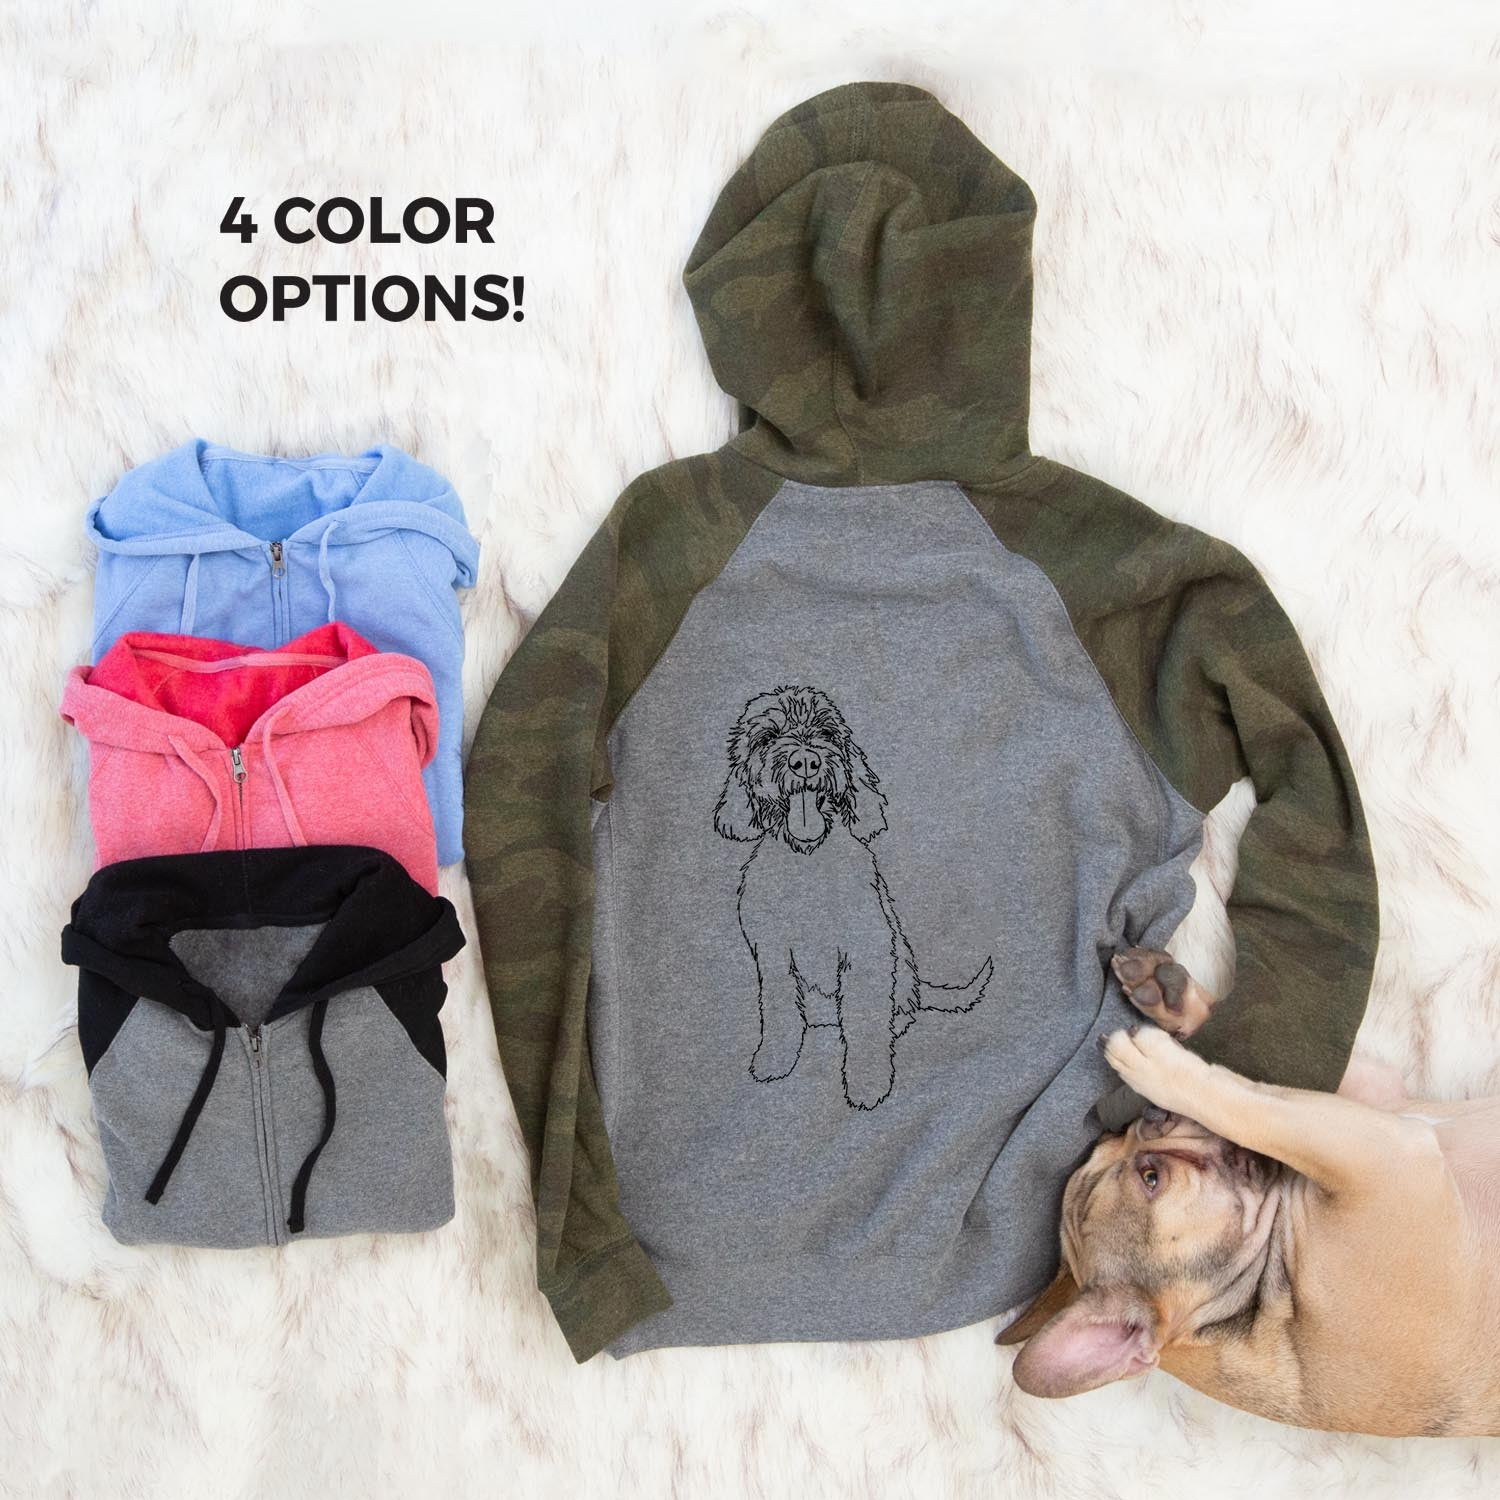 Doodled Ruby the Goldendoodle - Unisex Raglan Zip Up Hoodie